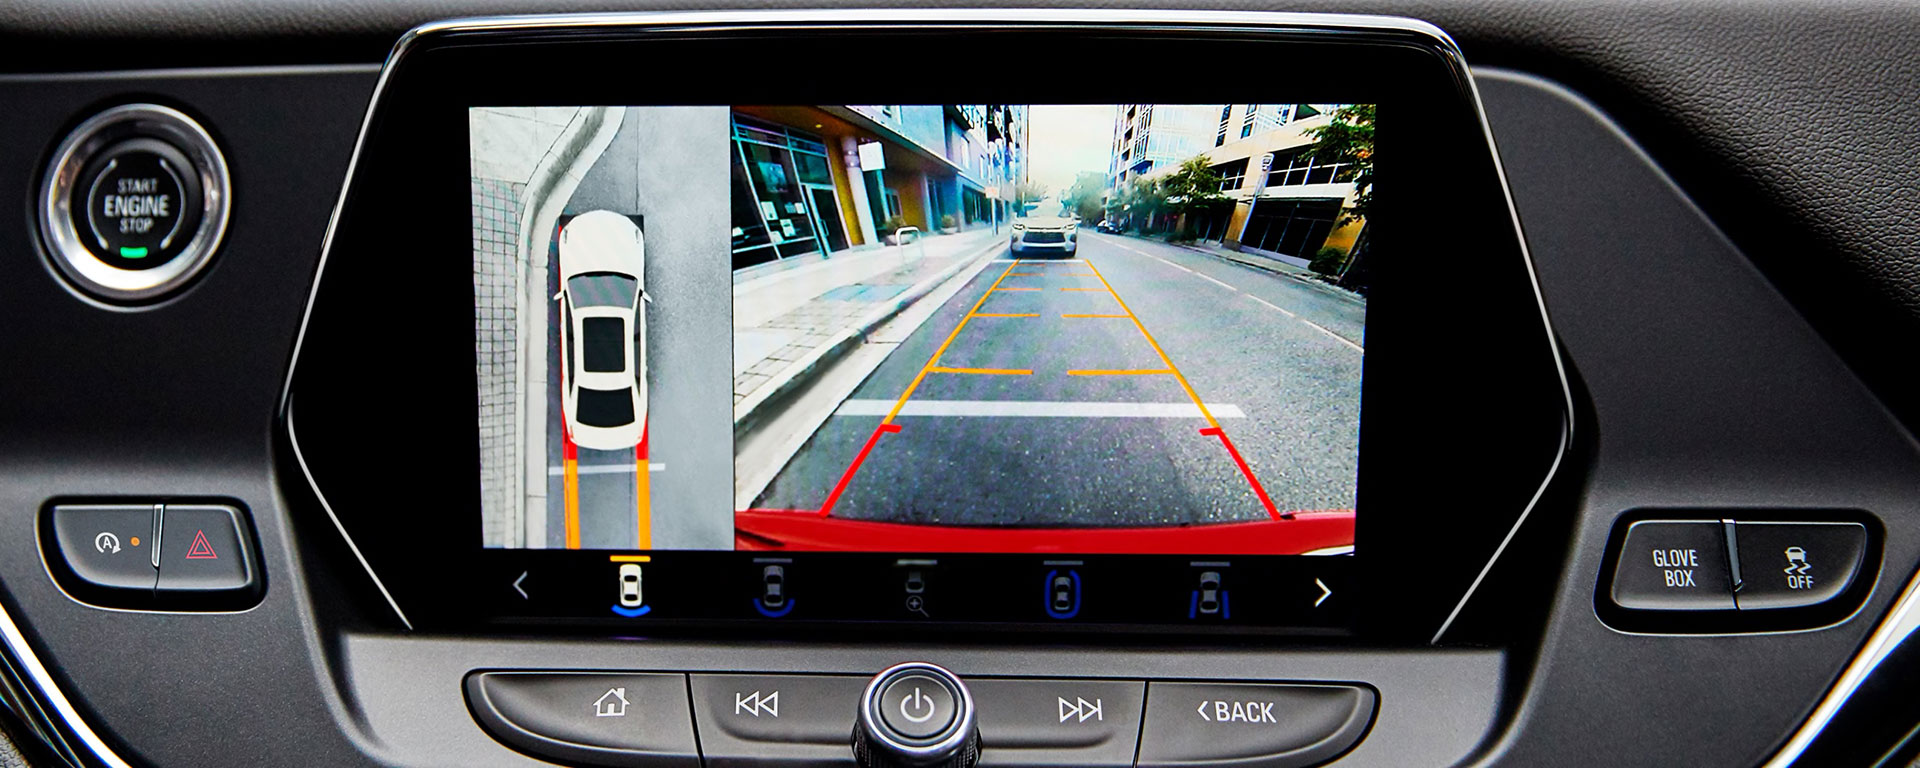 2020 Chevrolet Blazer In-Car Rear View Camera